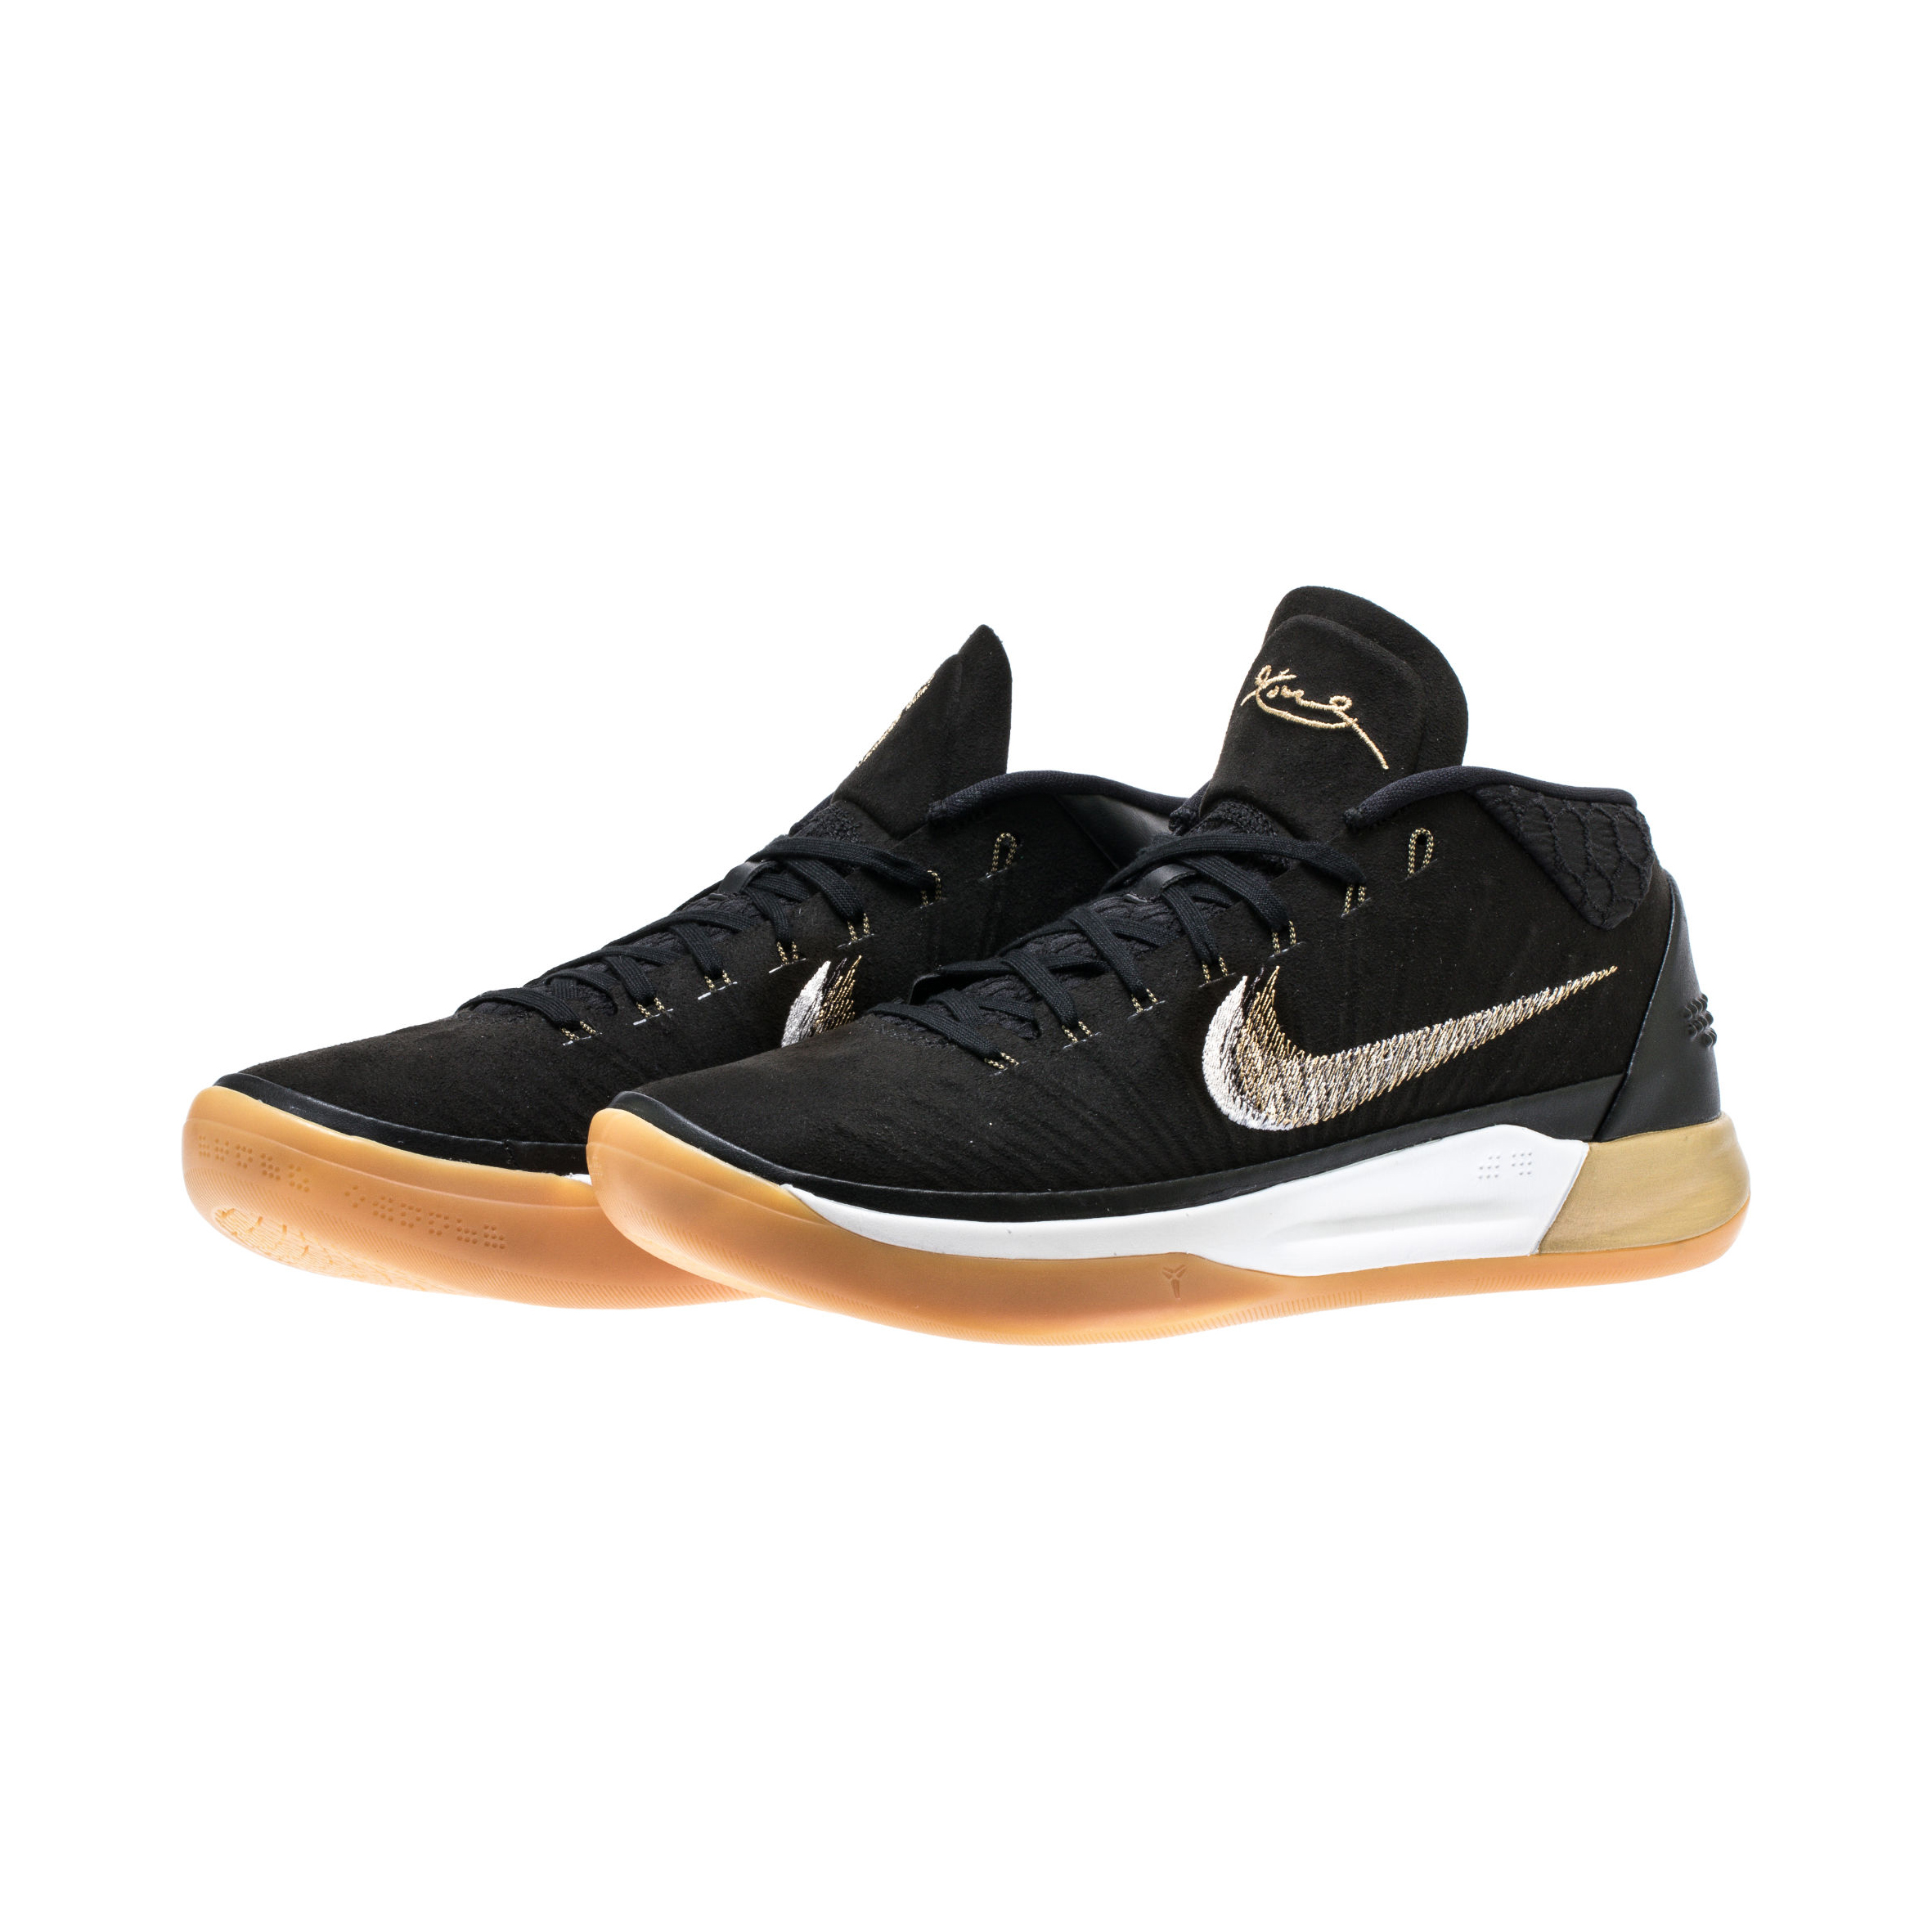 super popular 7d7d0 6a8ce NIKE KOBE A.D. BLACK:METALLIC GOLD:ANTHRACITE:LIGHT GUM 1 ...